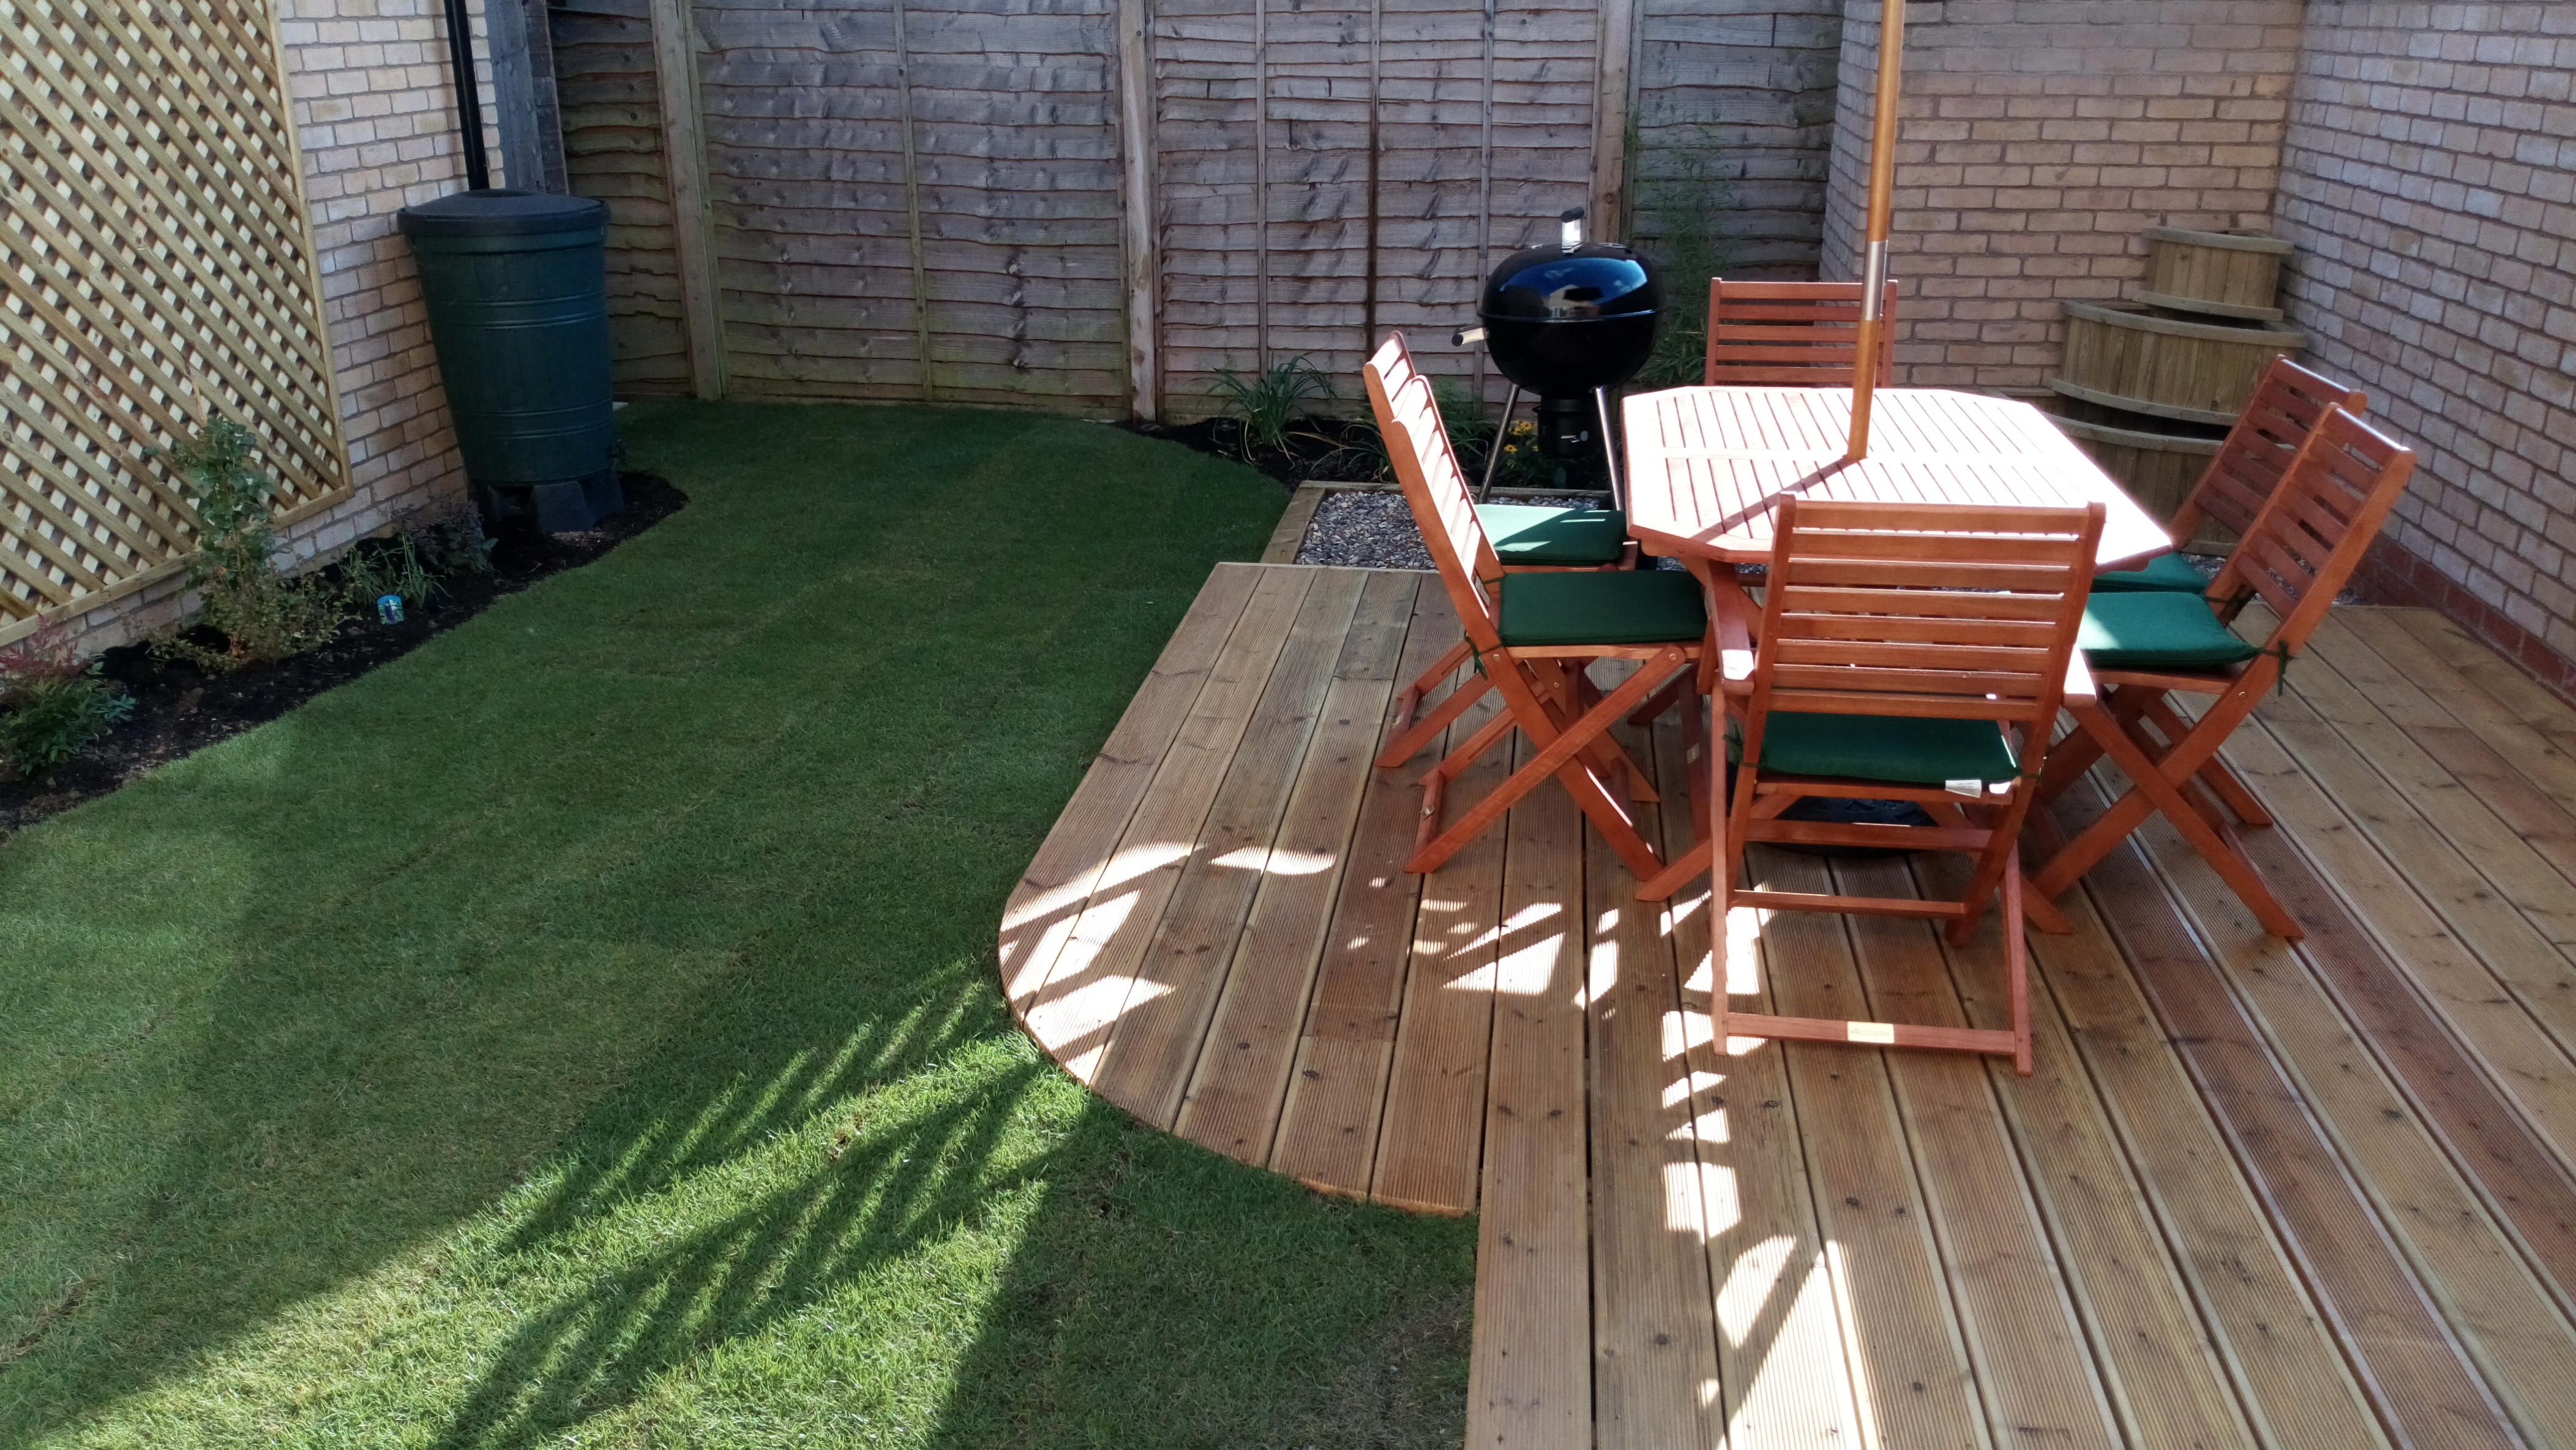 Another Small Garden In A New Build Home Garden Design And Landscaper Northstowe Papworth Everard Cambourne Cambridgeshire